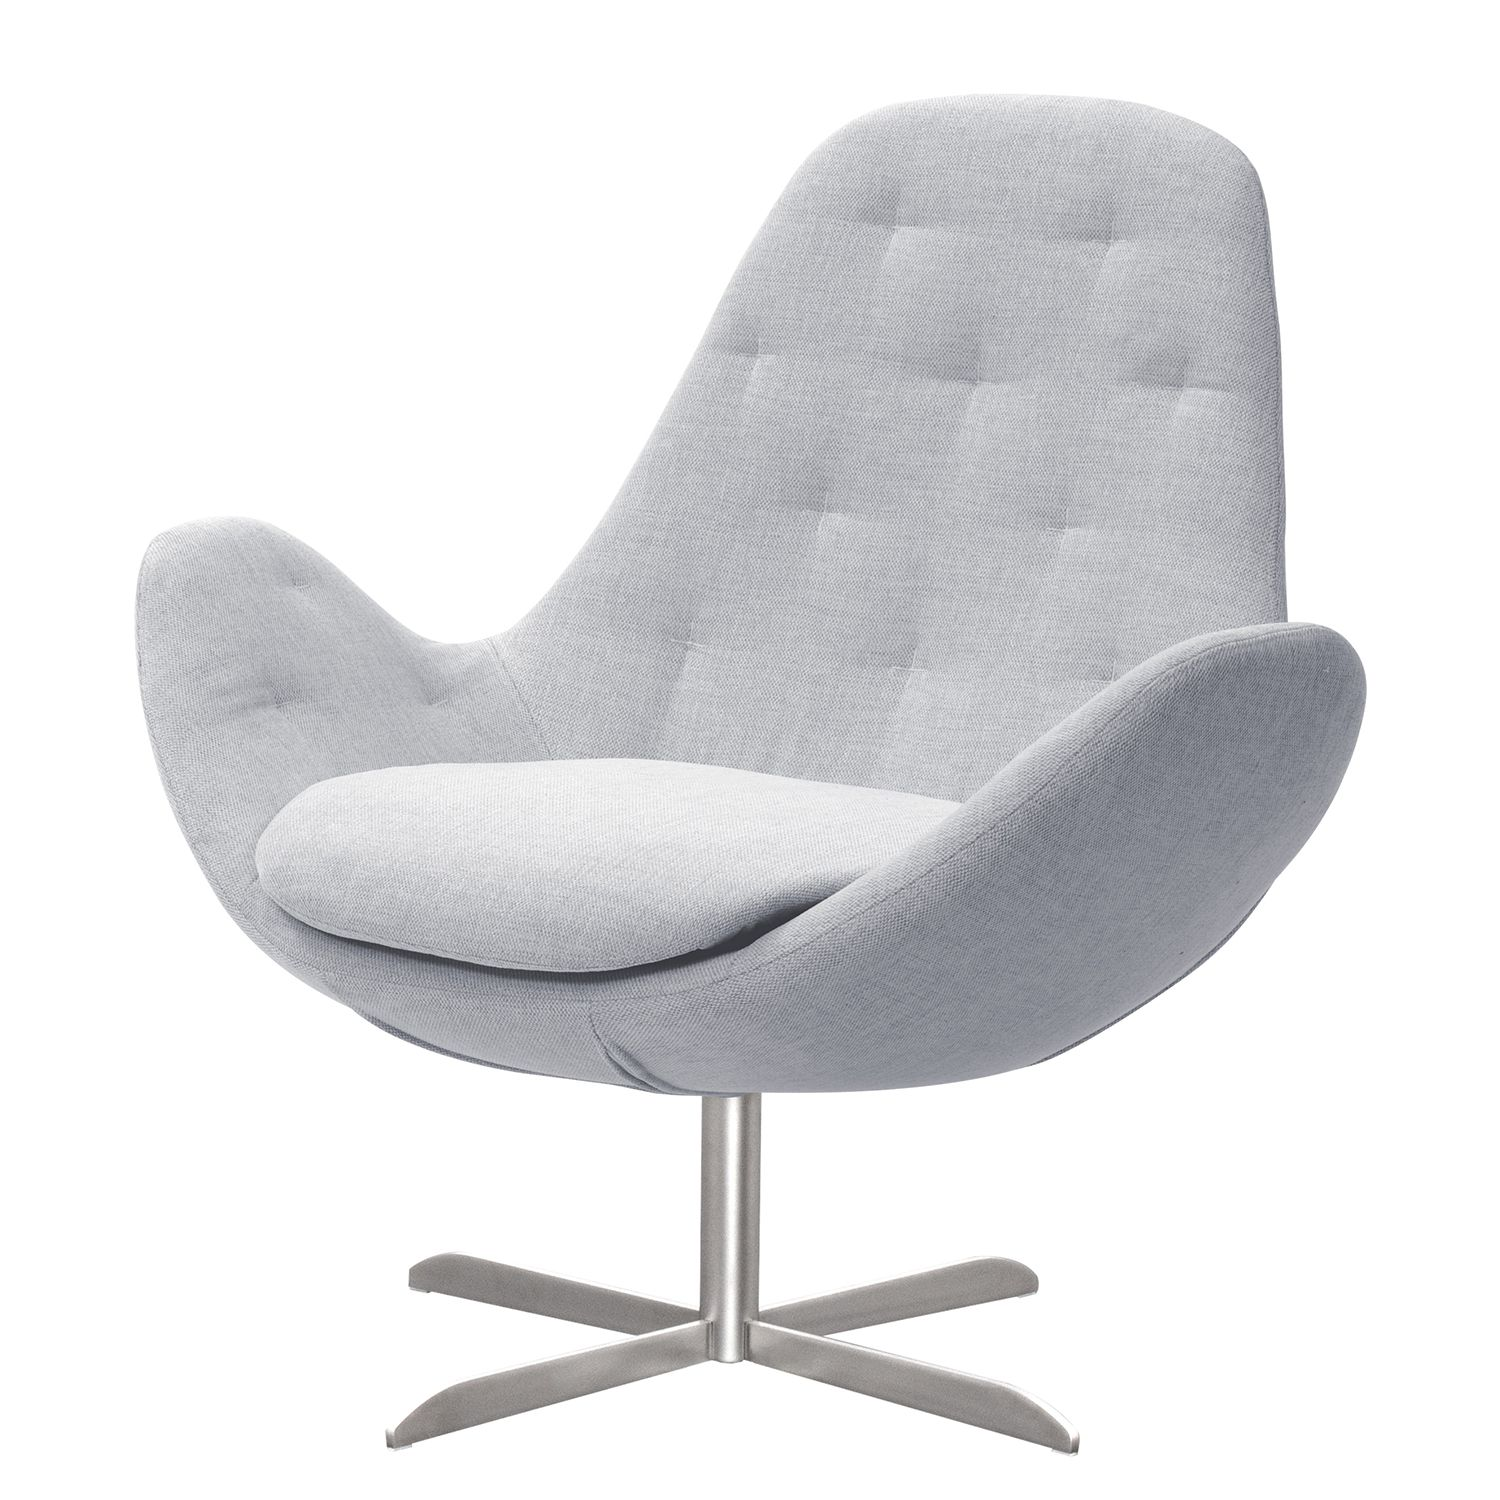 Fauteuil Houston IV geweven stof, Studio Copenhagen